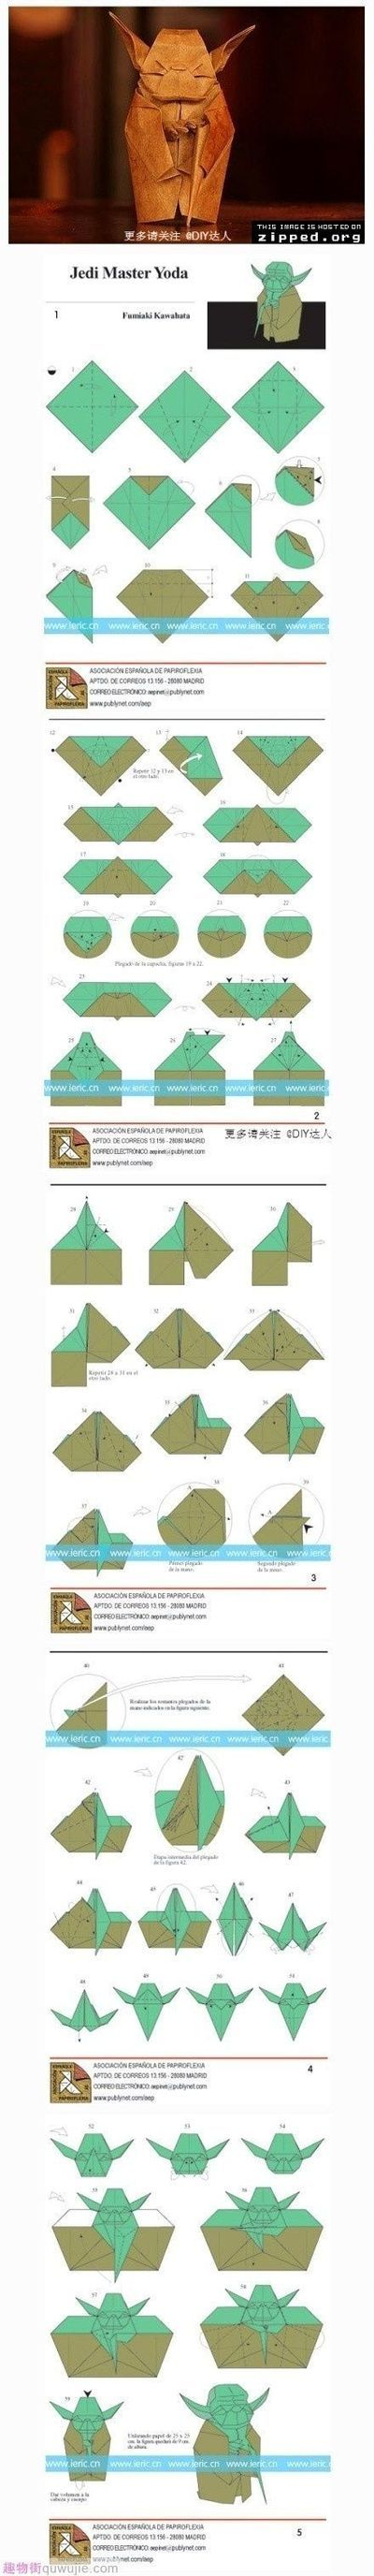 27 Best Origami Images On Pinterest Paper Toys Star Wars And Science Fiction Diagrams Yoda Diagram